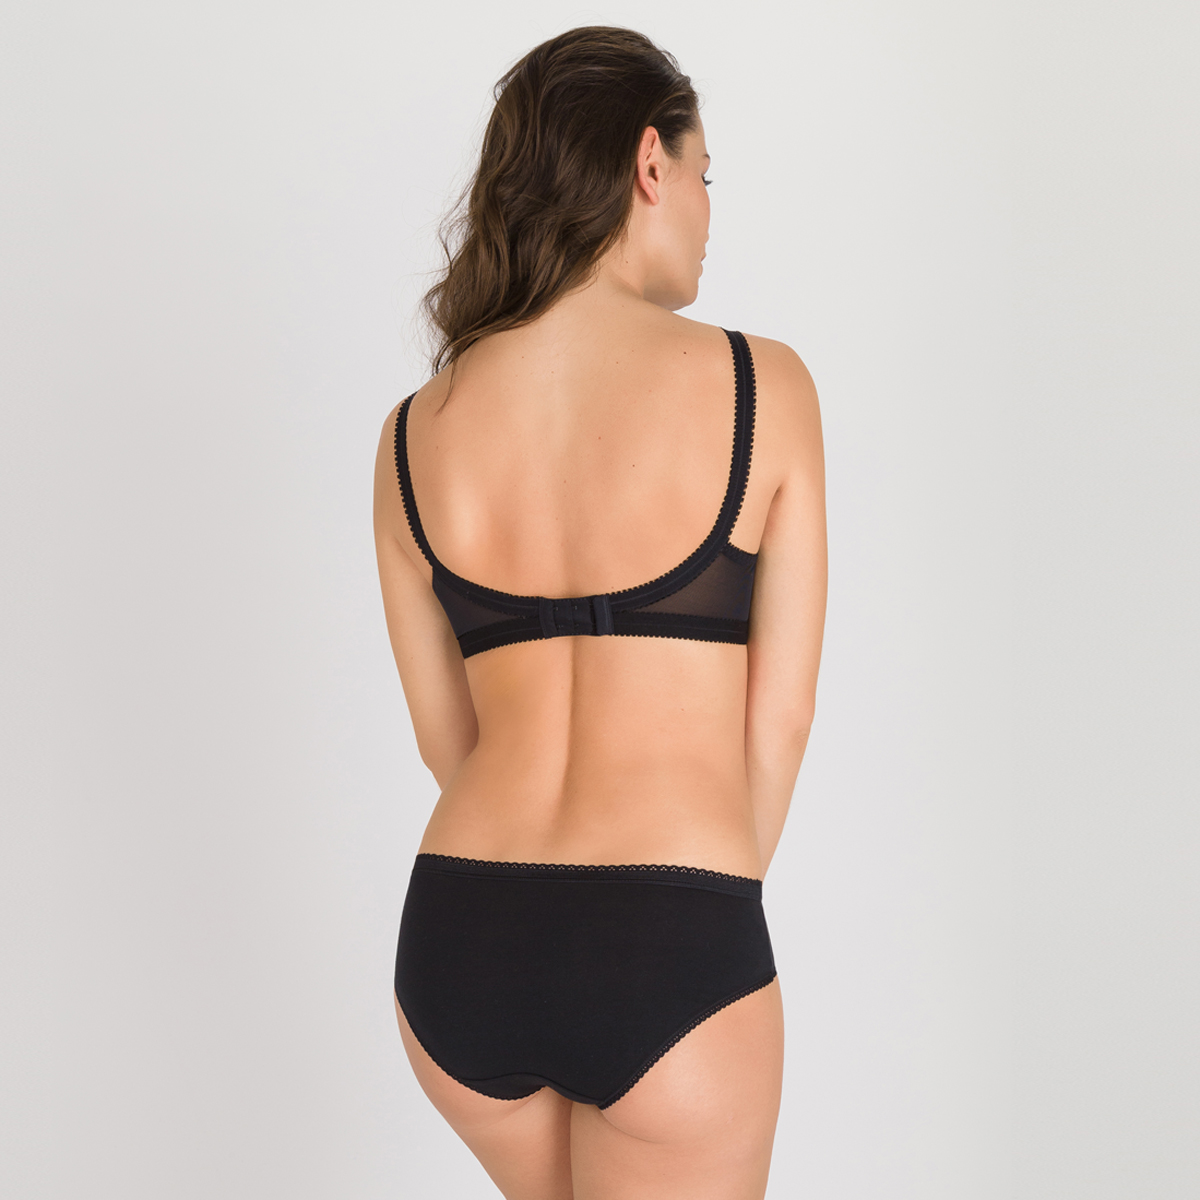 Non-wired Bra in Black – Cross Your Heart 165, , PLAYTEX